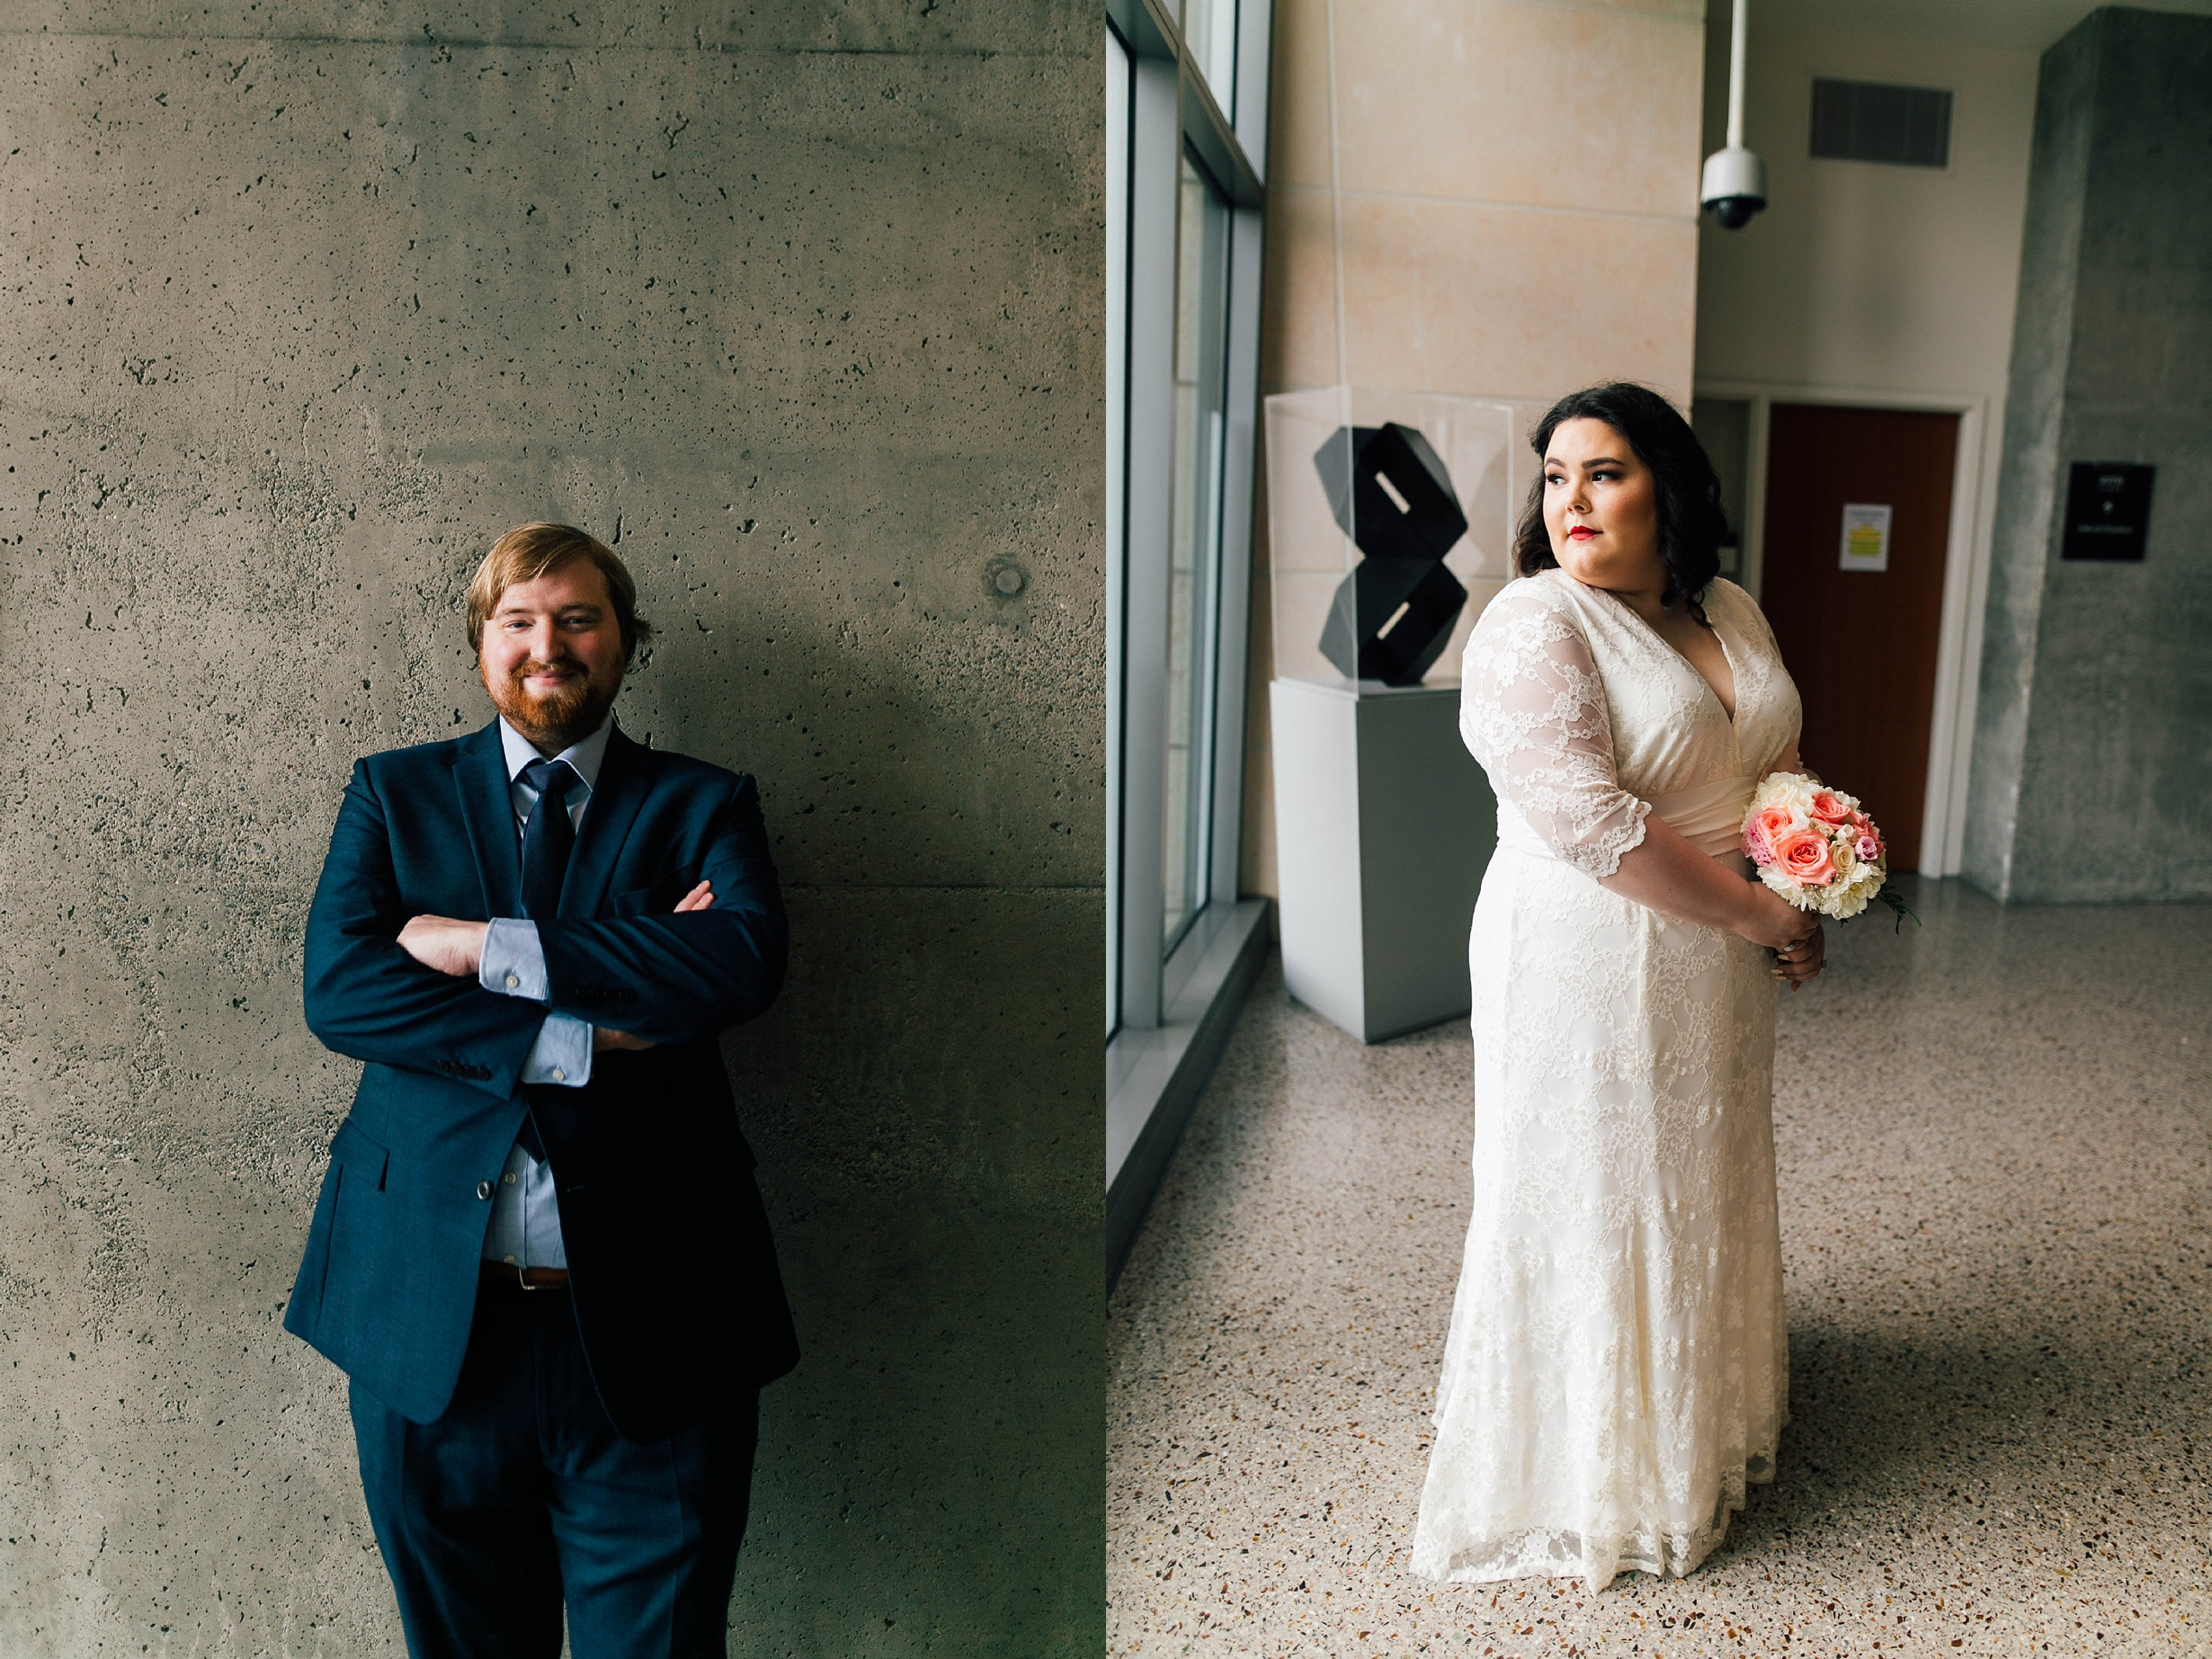 ashley_vos_seattle_Courthouse_ wedding_photographer_0150.jpg